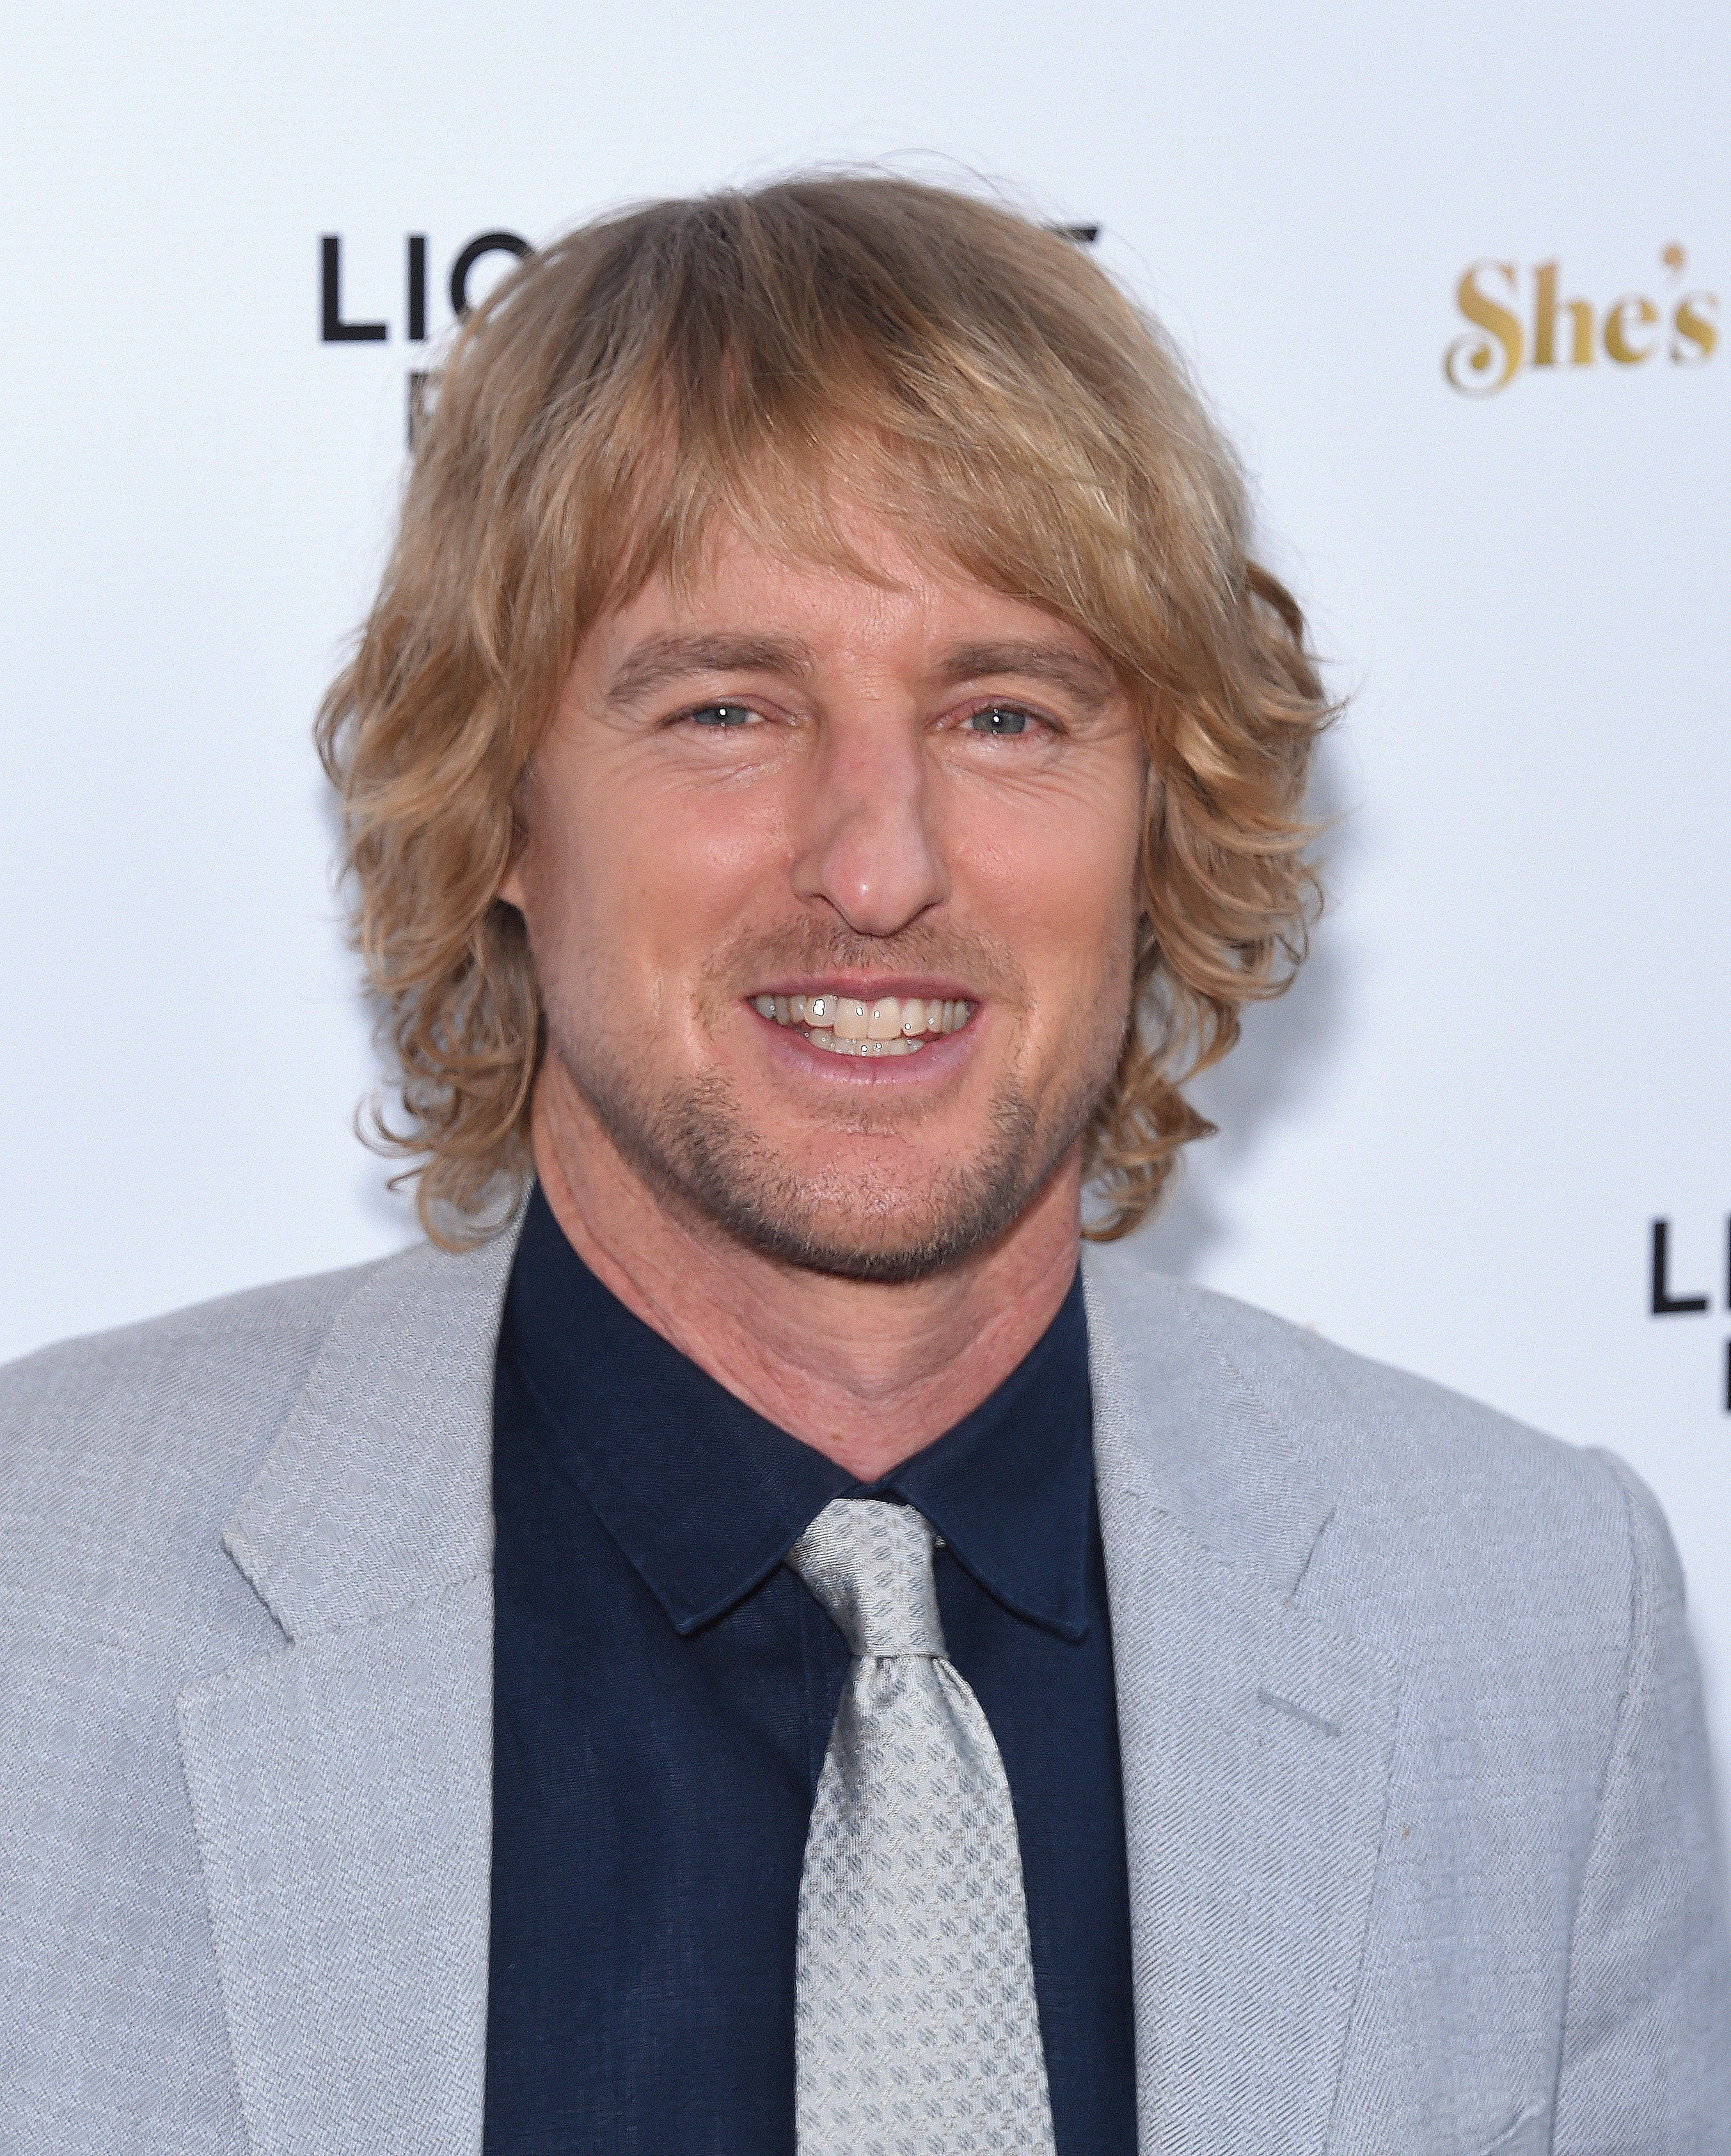 """Owen Wilson attends the premiere of """"She's Funny That Way"""" in Los Angeles, Calfornia on August 19, 2015 